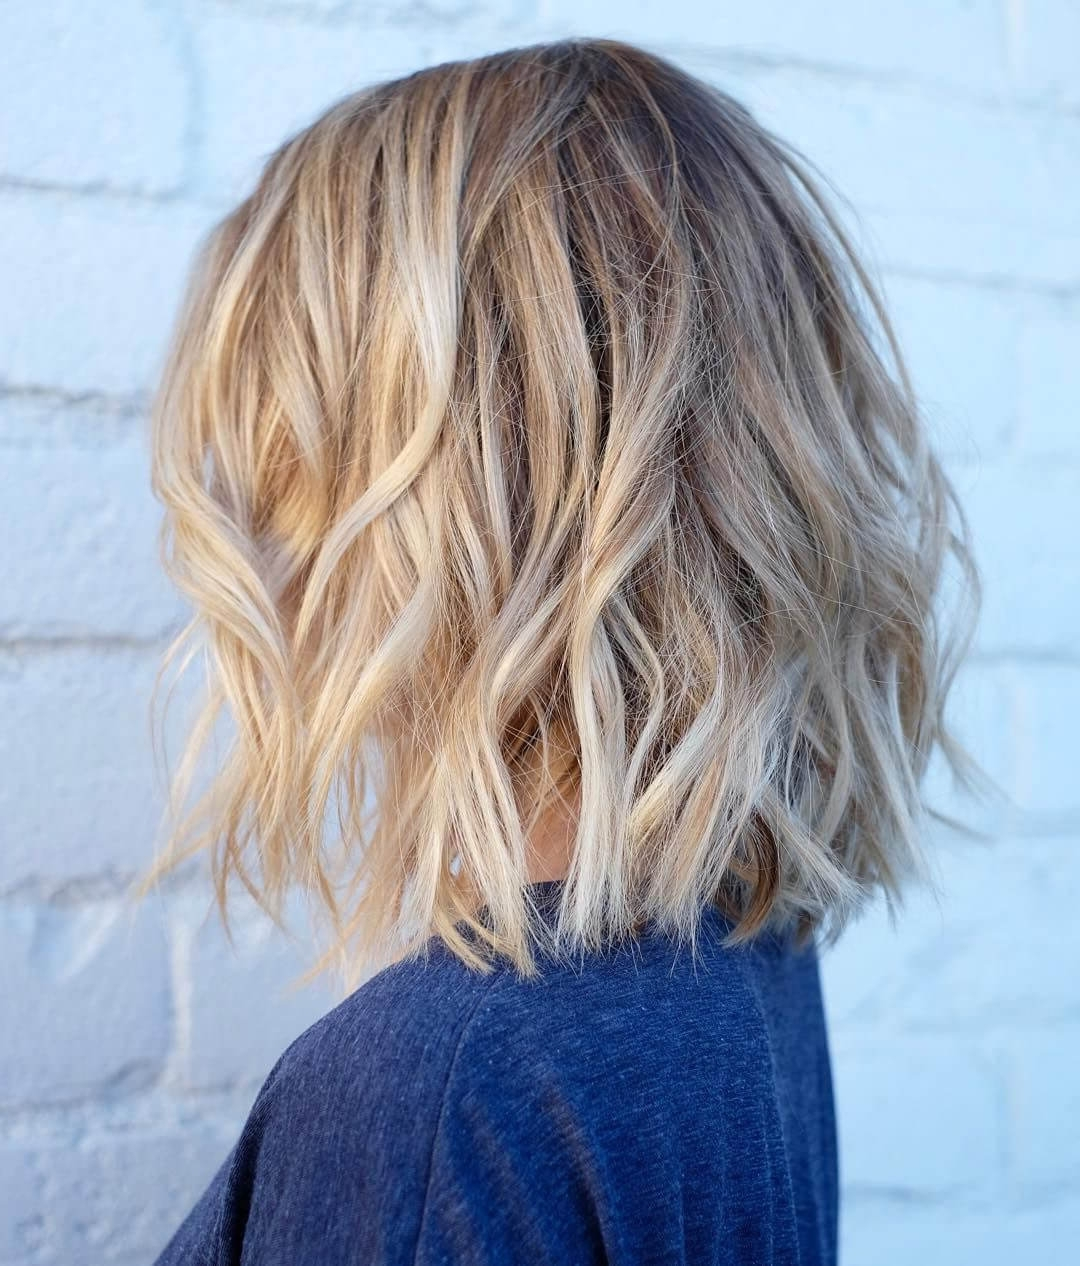 50 Fresh Short Blonde Hair Ideas To Update Your Style In 2018 Inside 2017 Ash Blonde Half Up Hairstyles (View 5 of 20)